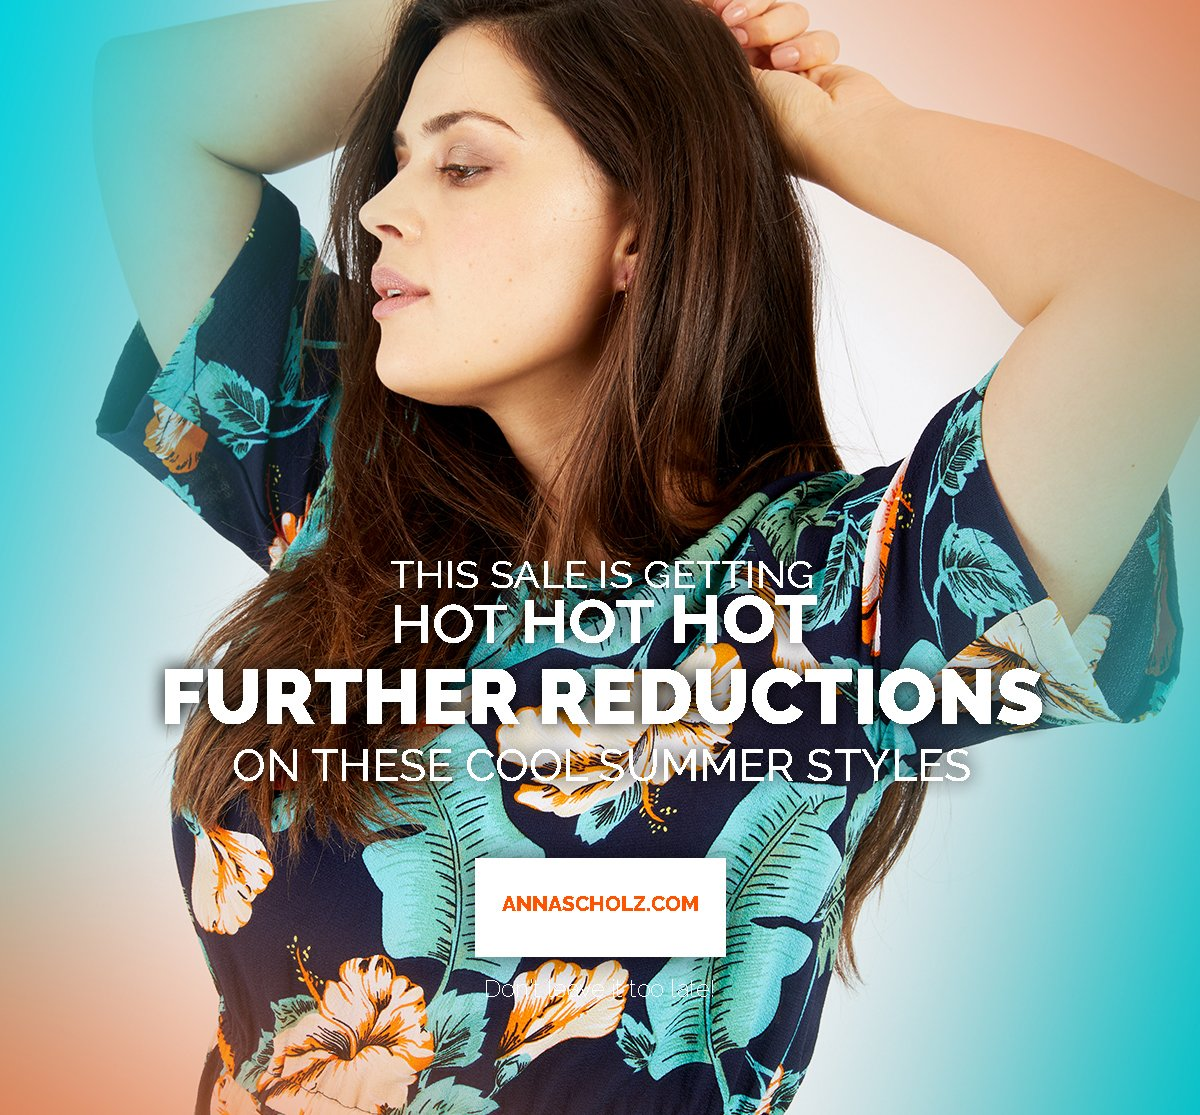 test Twitter Media - Further reductions at plus size designer anna scholz https://t.co/kwh8VxU6Zt https://t.co/DsVcyKodFZ